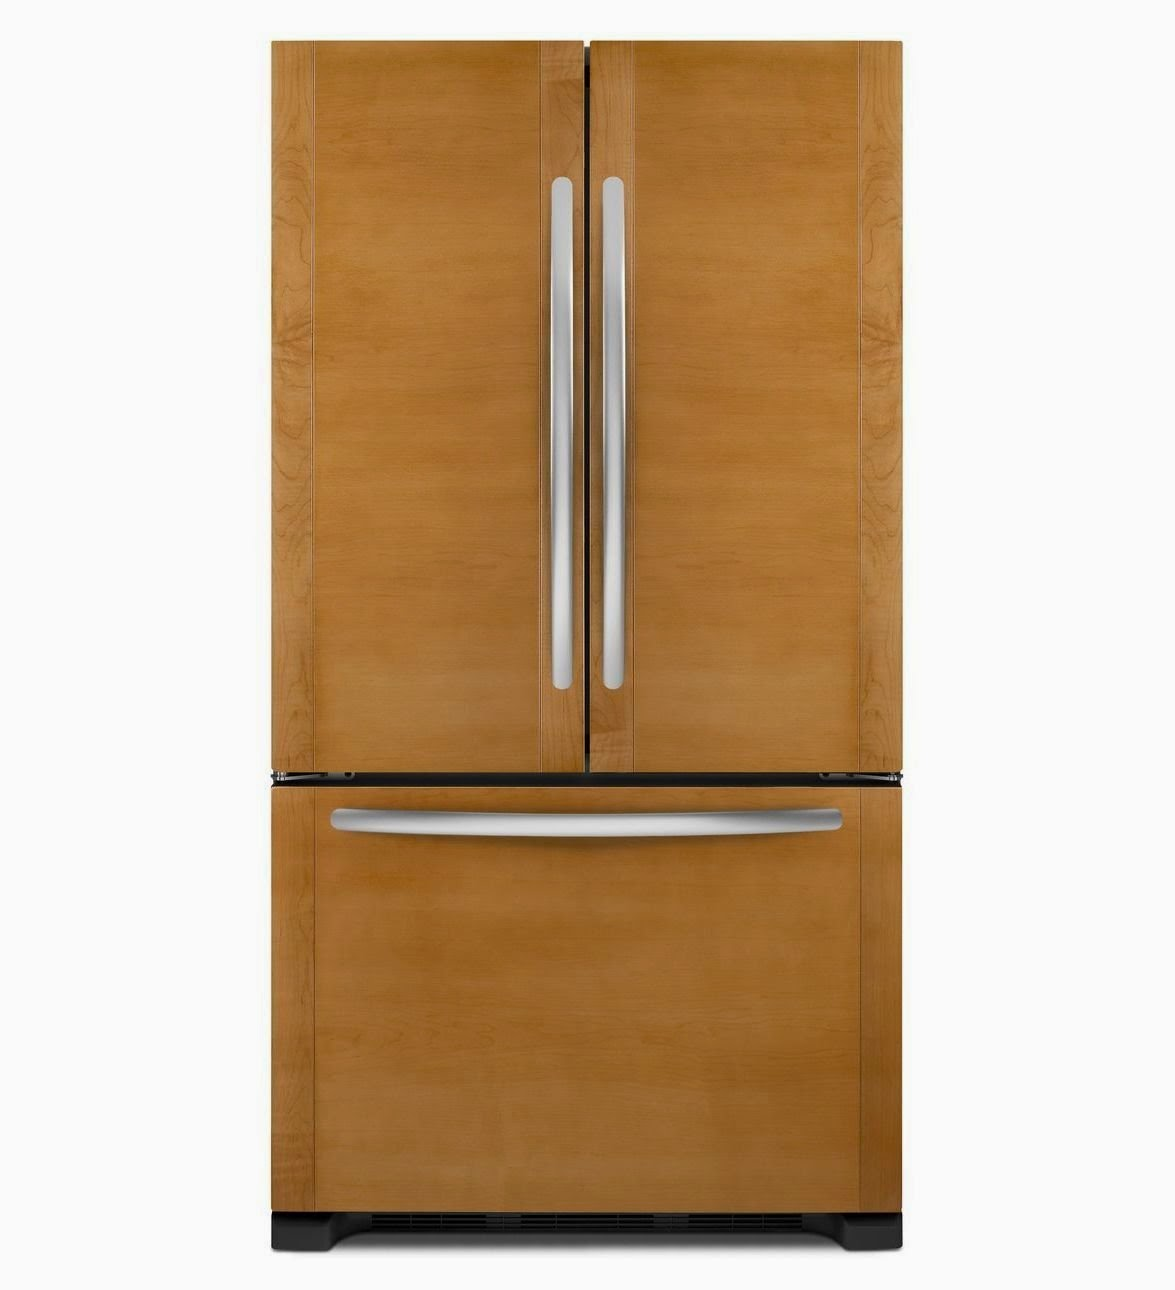 Counter Depth Refrigerators Reviews Counter Depth